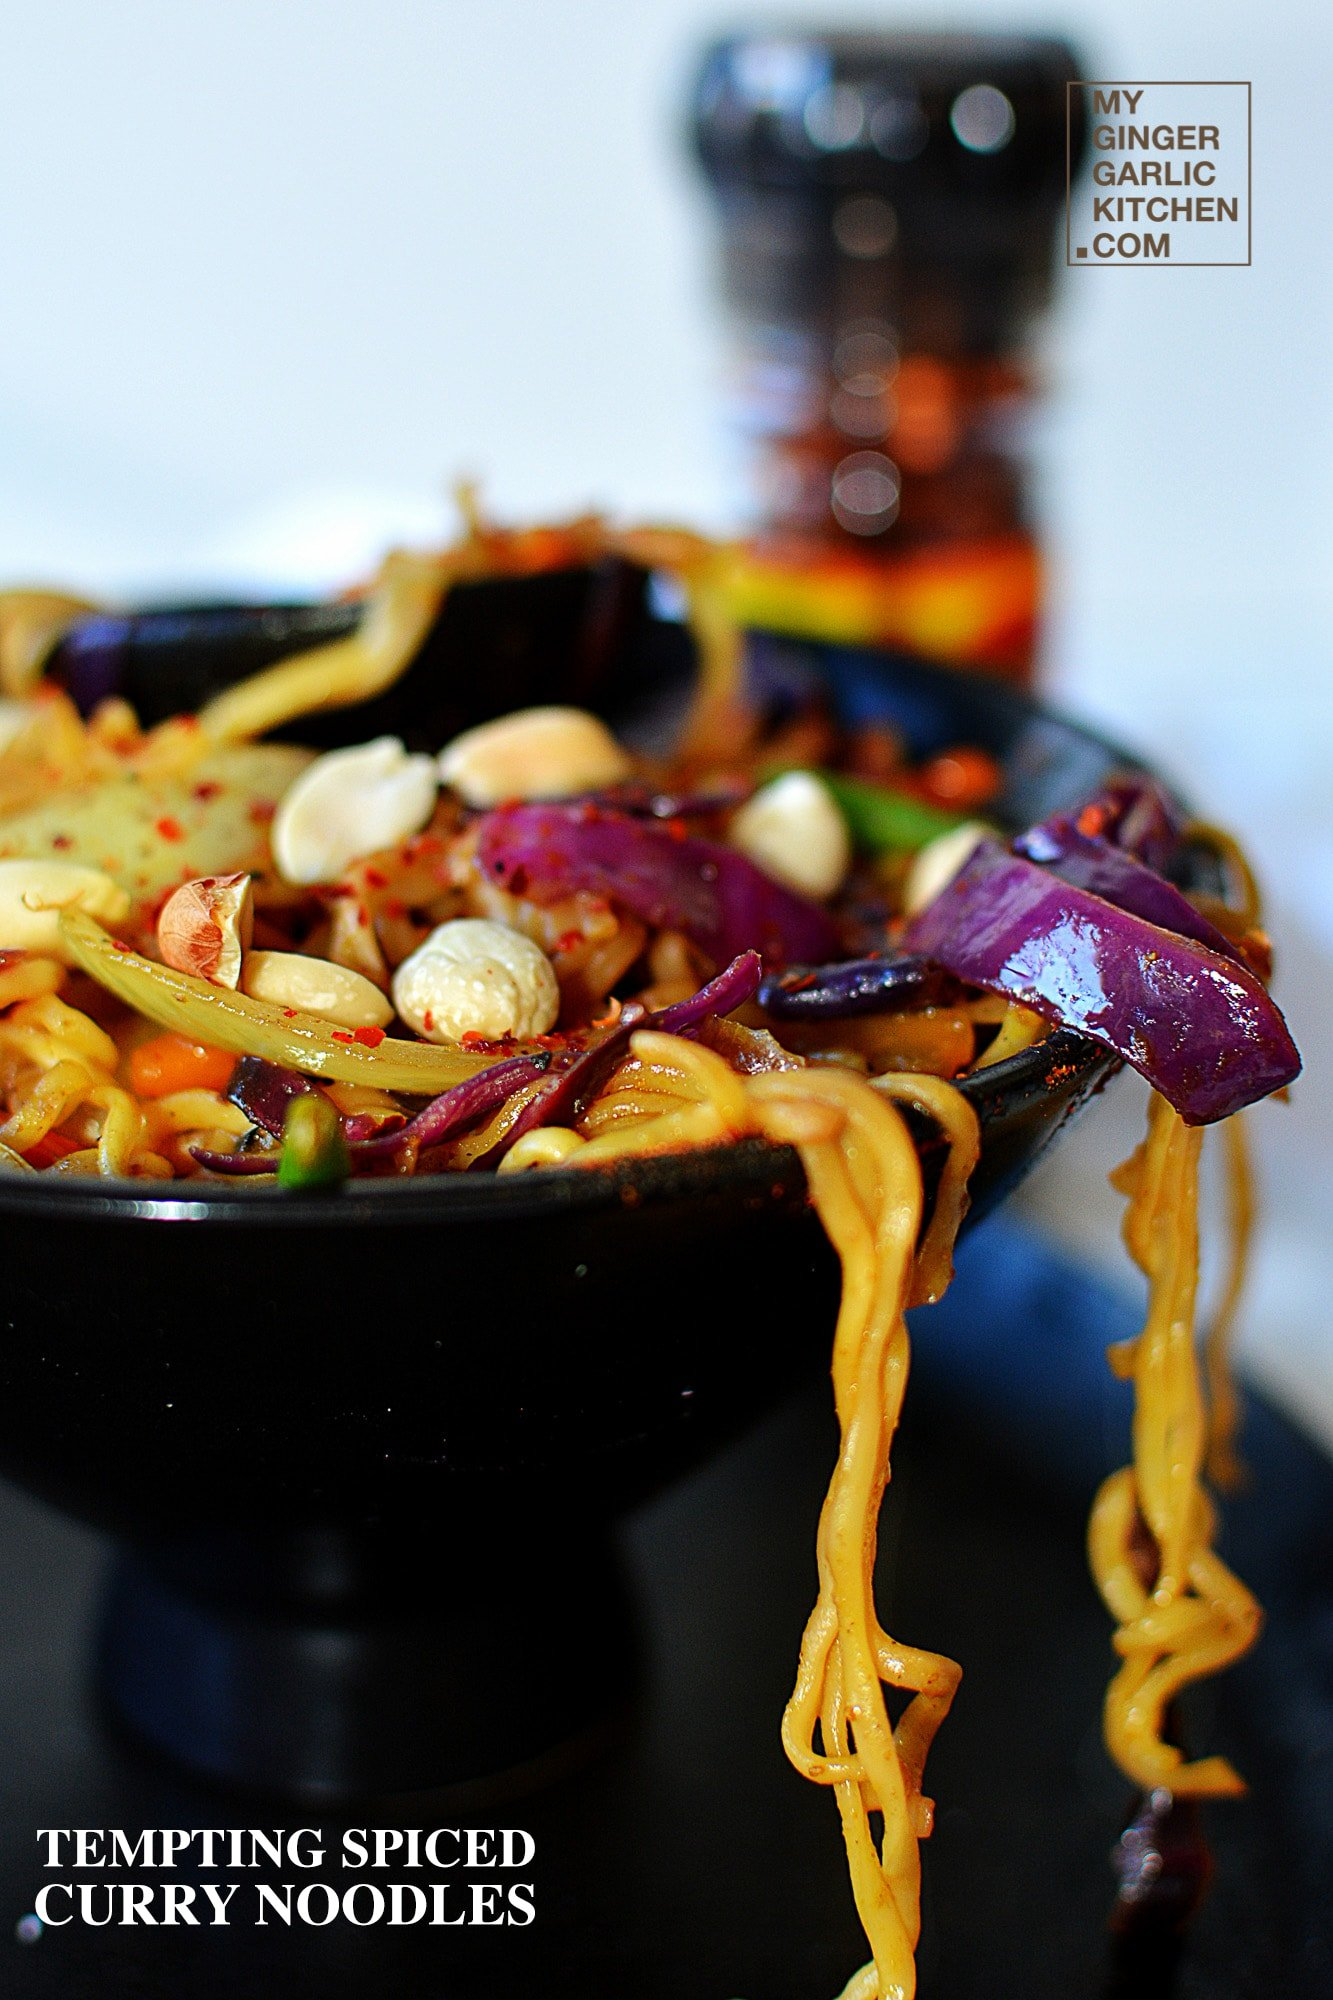 Image - recipe tempting spiced curry noodles anupama paliwal my ginger garlic kitchen 7